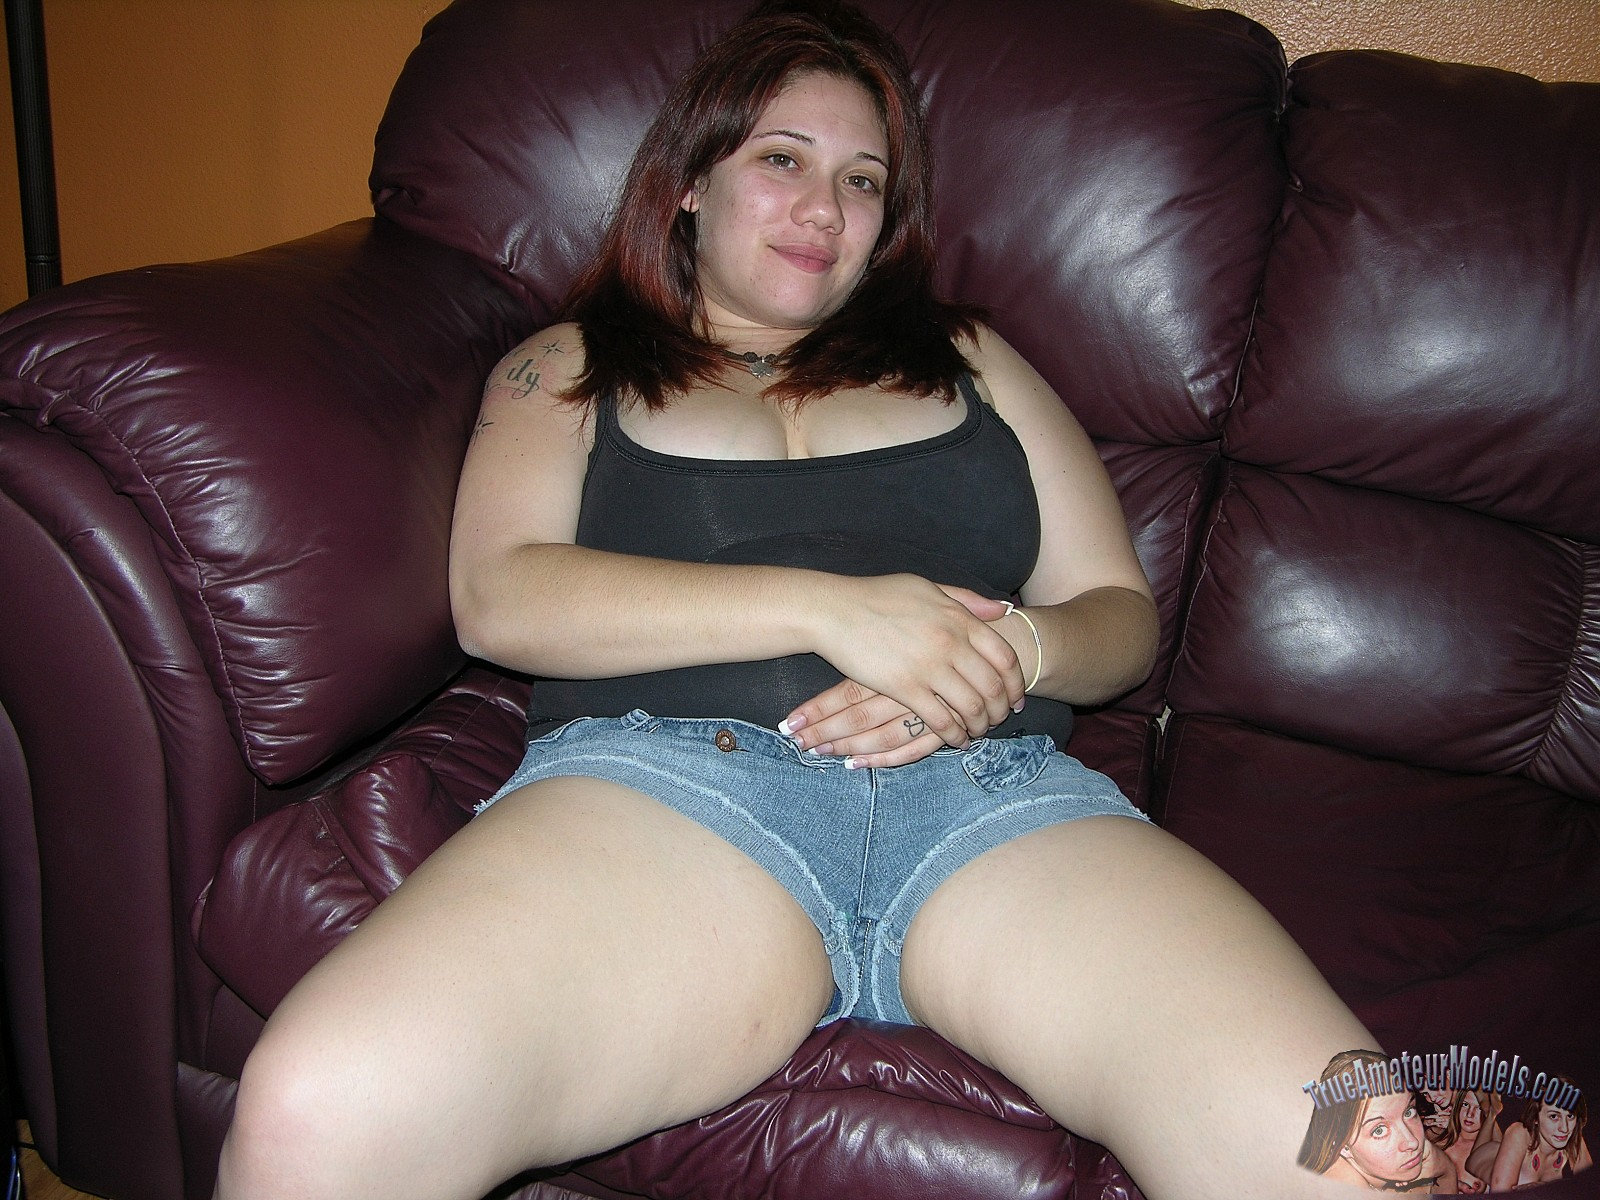 Amature chubby girl